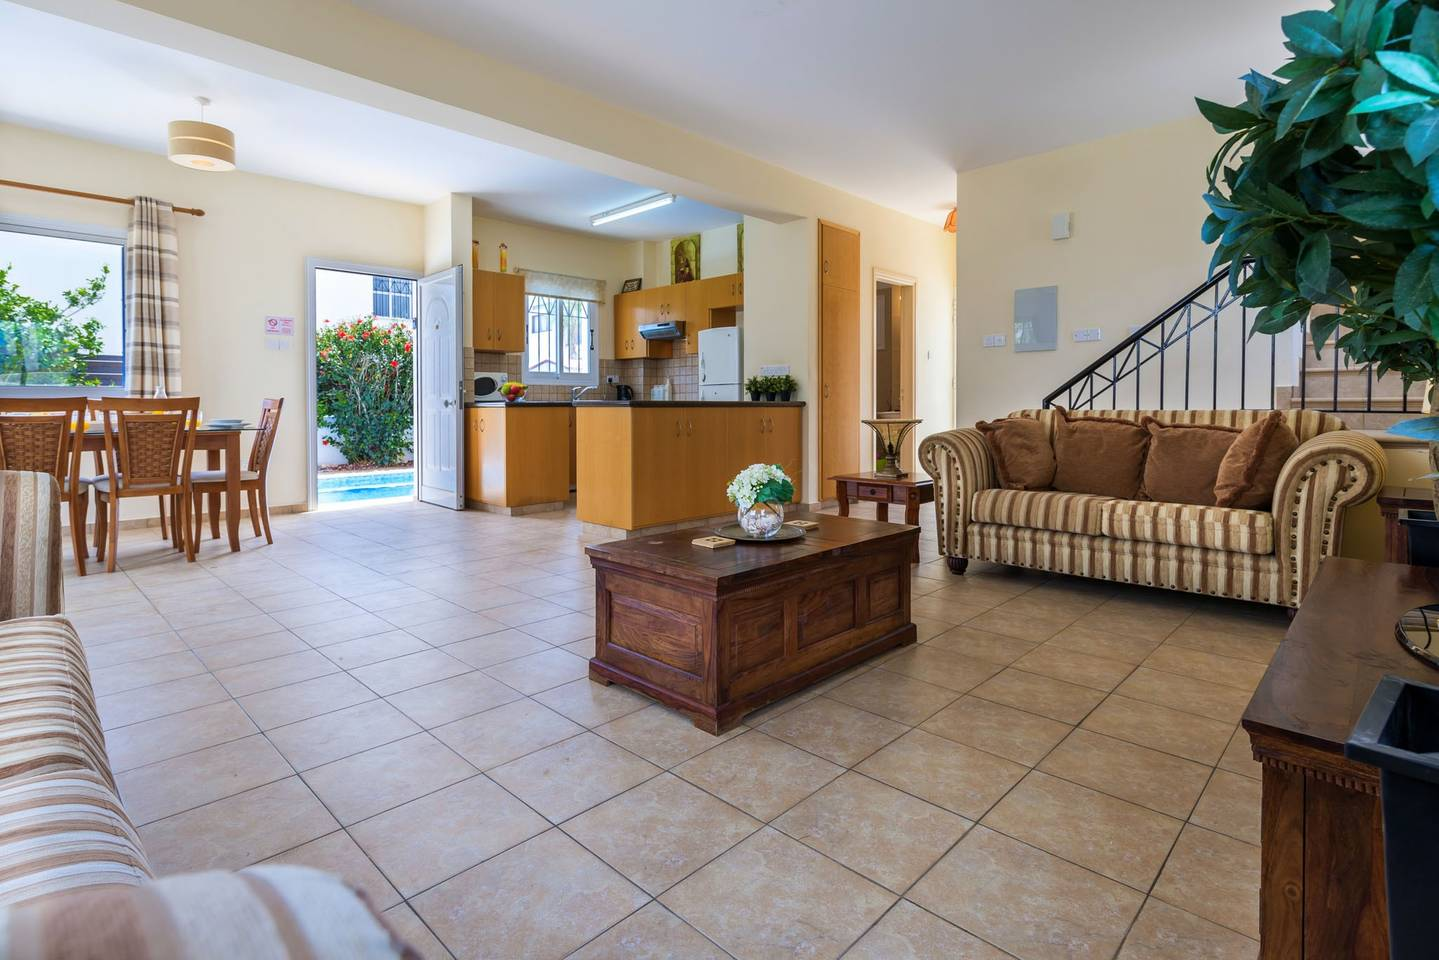 Apartment Villa Evace - 3 Bedroom Villa with Private Pool - 100m from Beach photo 18516336